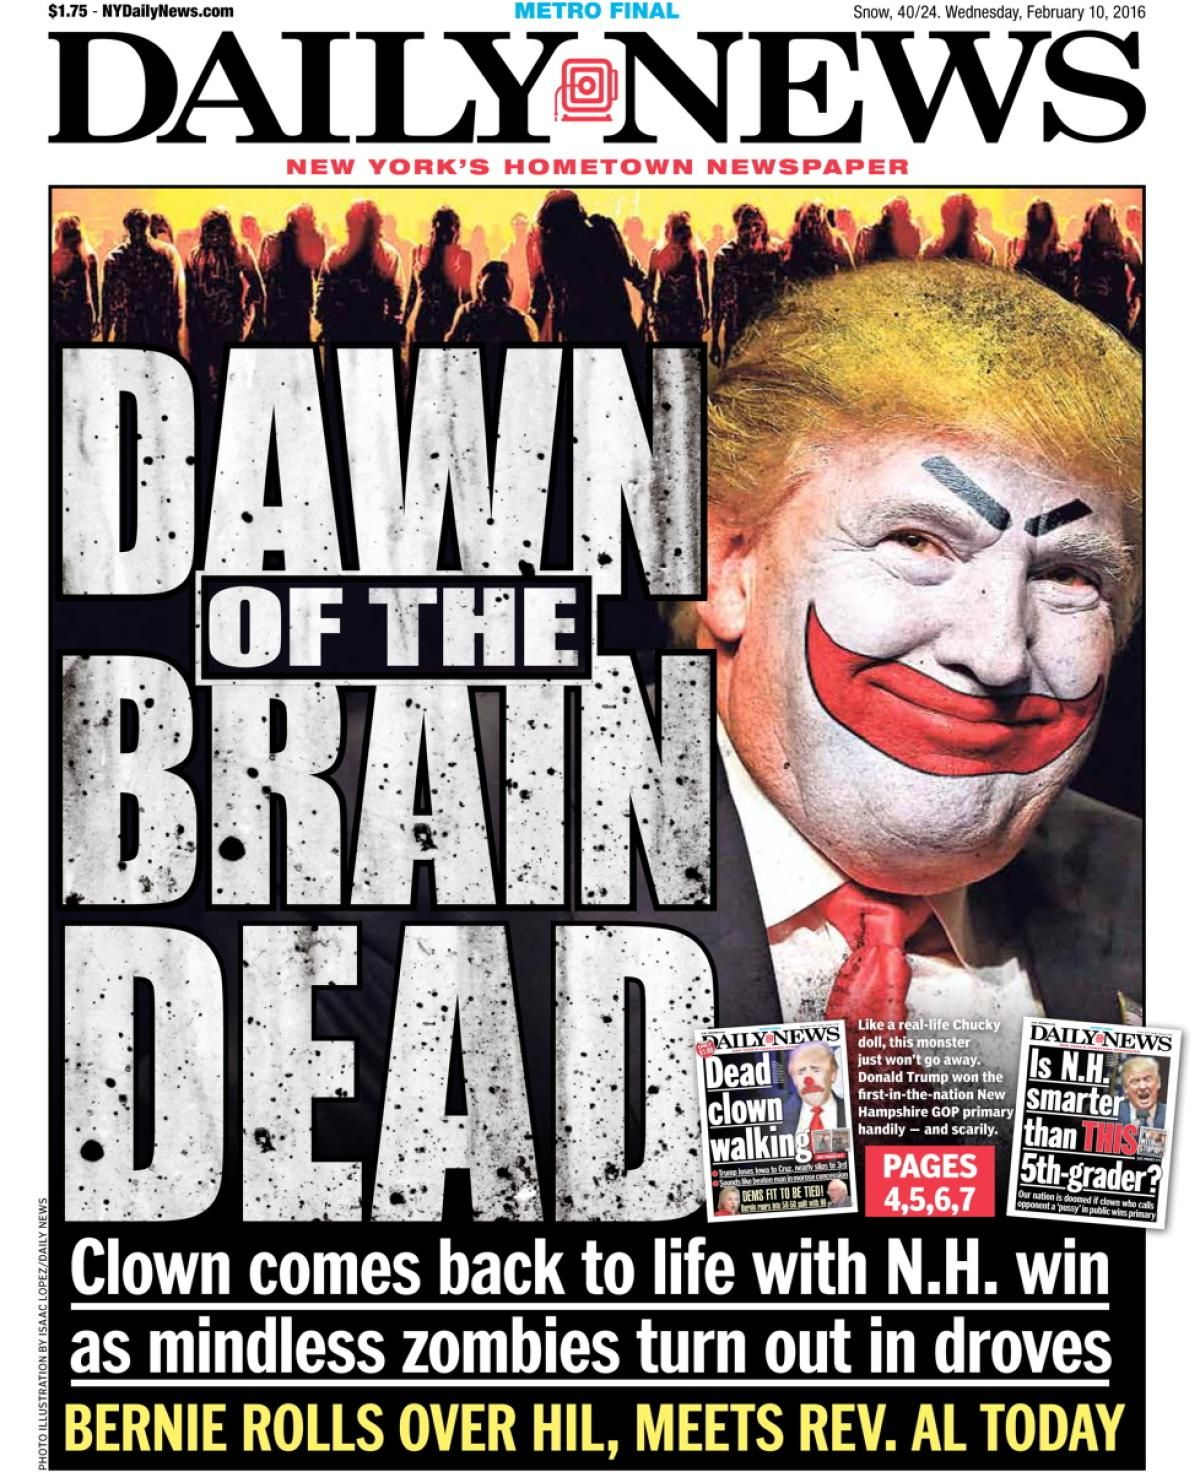 House of horrors november 9 2016 photos new york daily news front pages on the presidential election